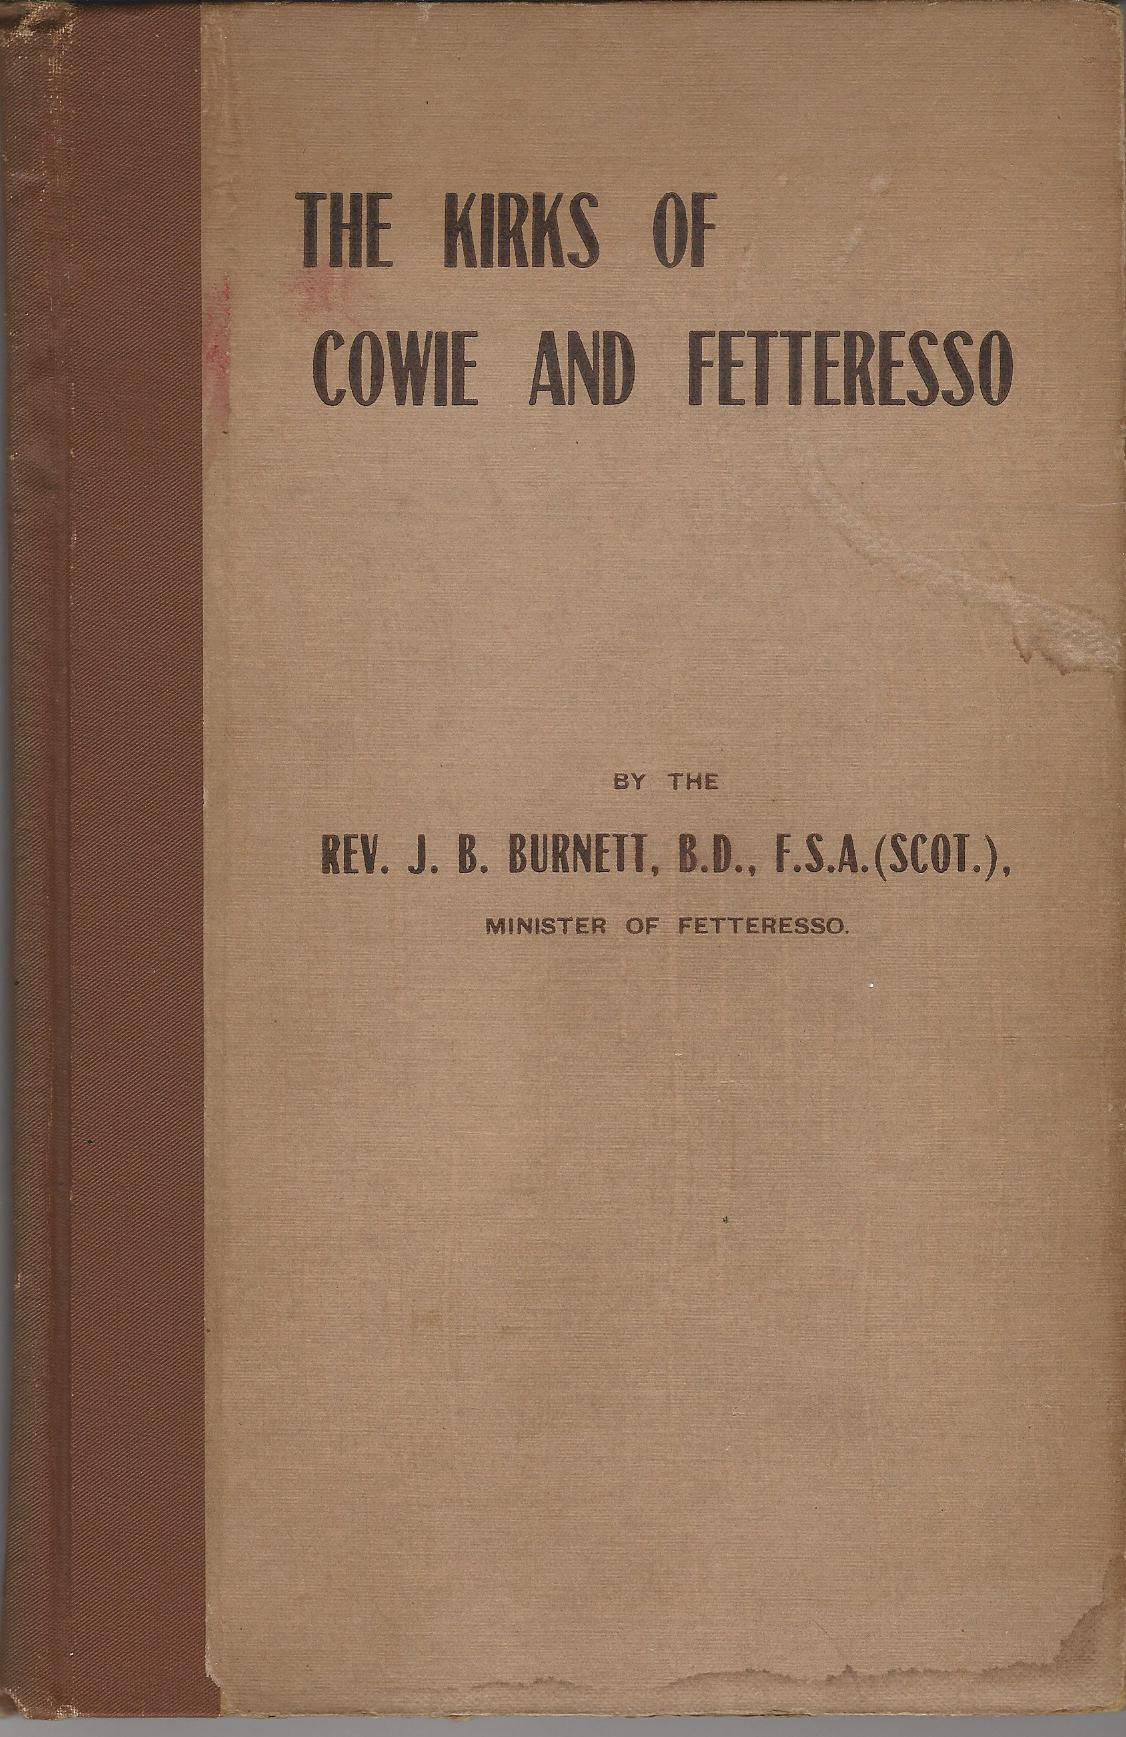 Image for The Kirks of Cowie and Fetteresso.